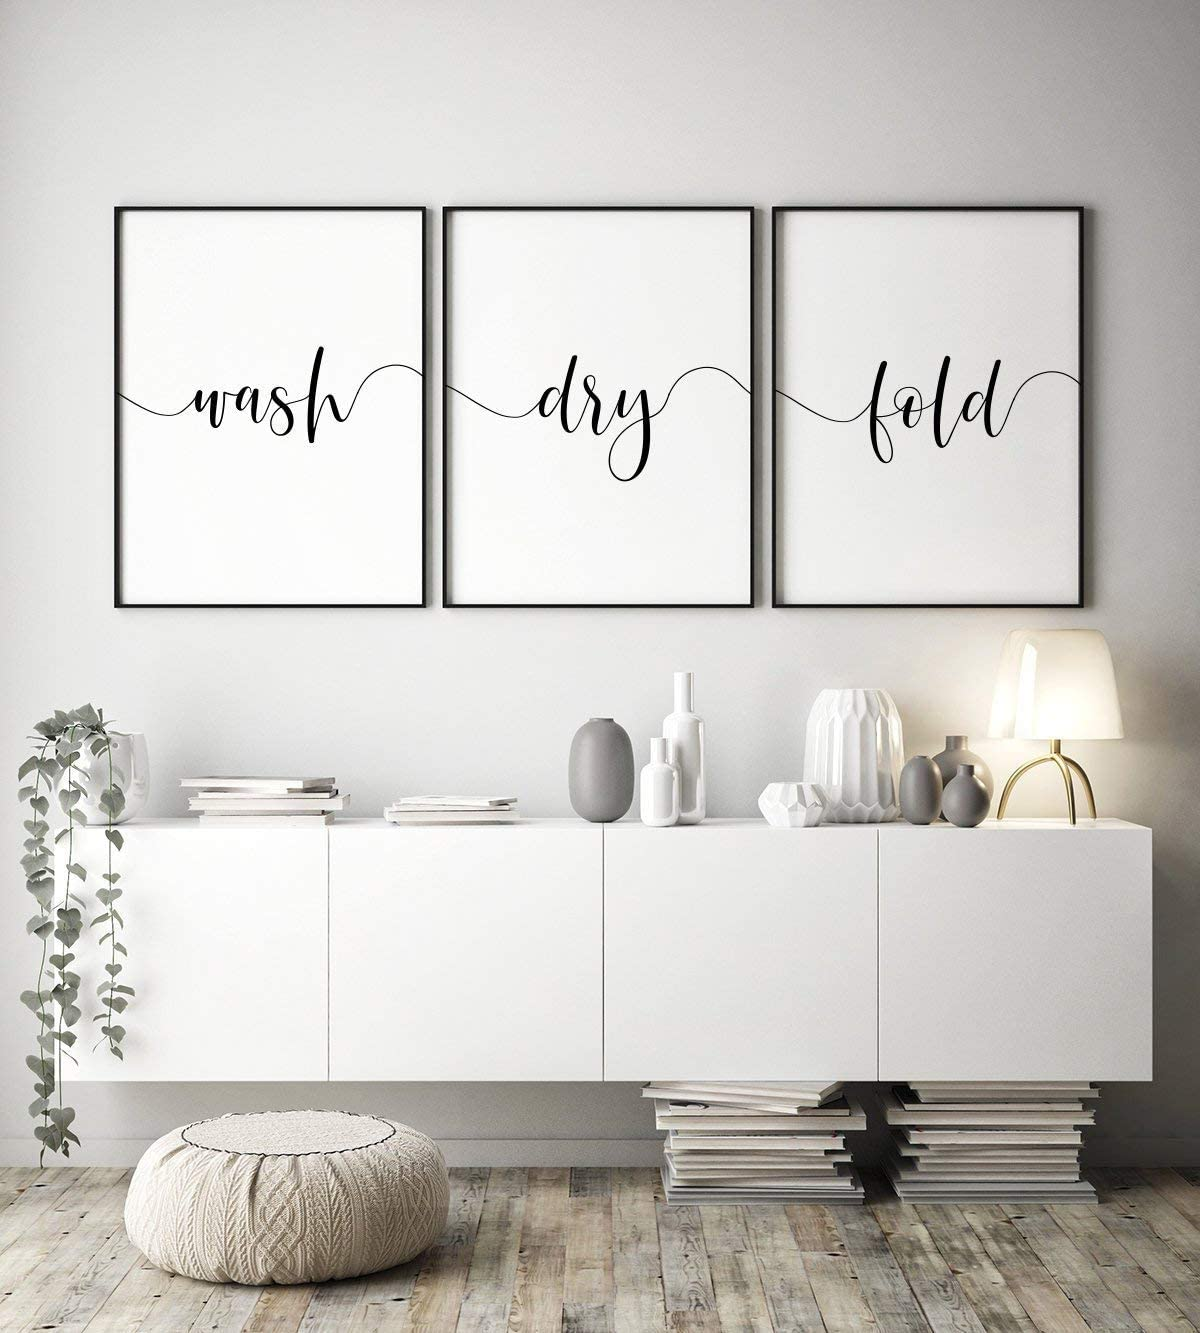 Home Garden Other Kitchen Dining Items Home Decor Metal Wall Art Decor Gift Laundry Wall Art Laundry Room Decor Magnumcap Com